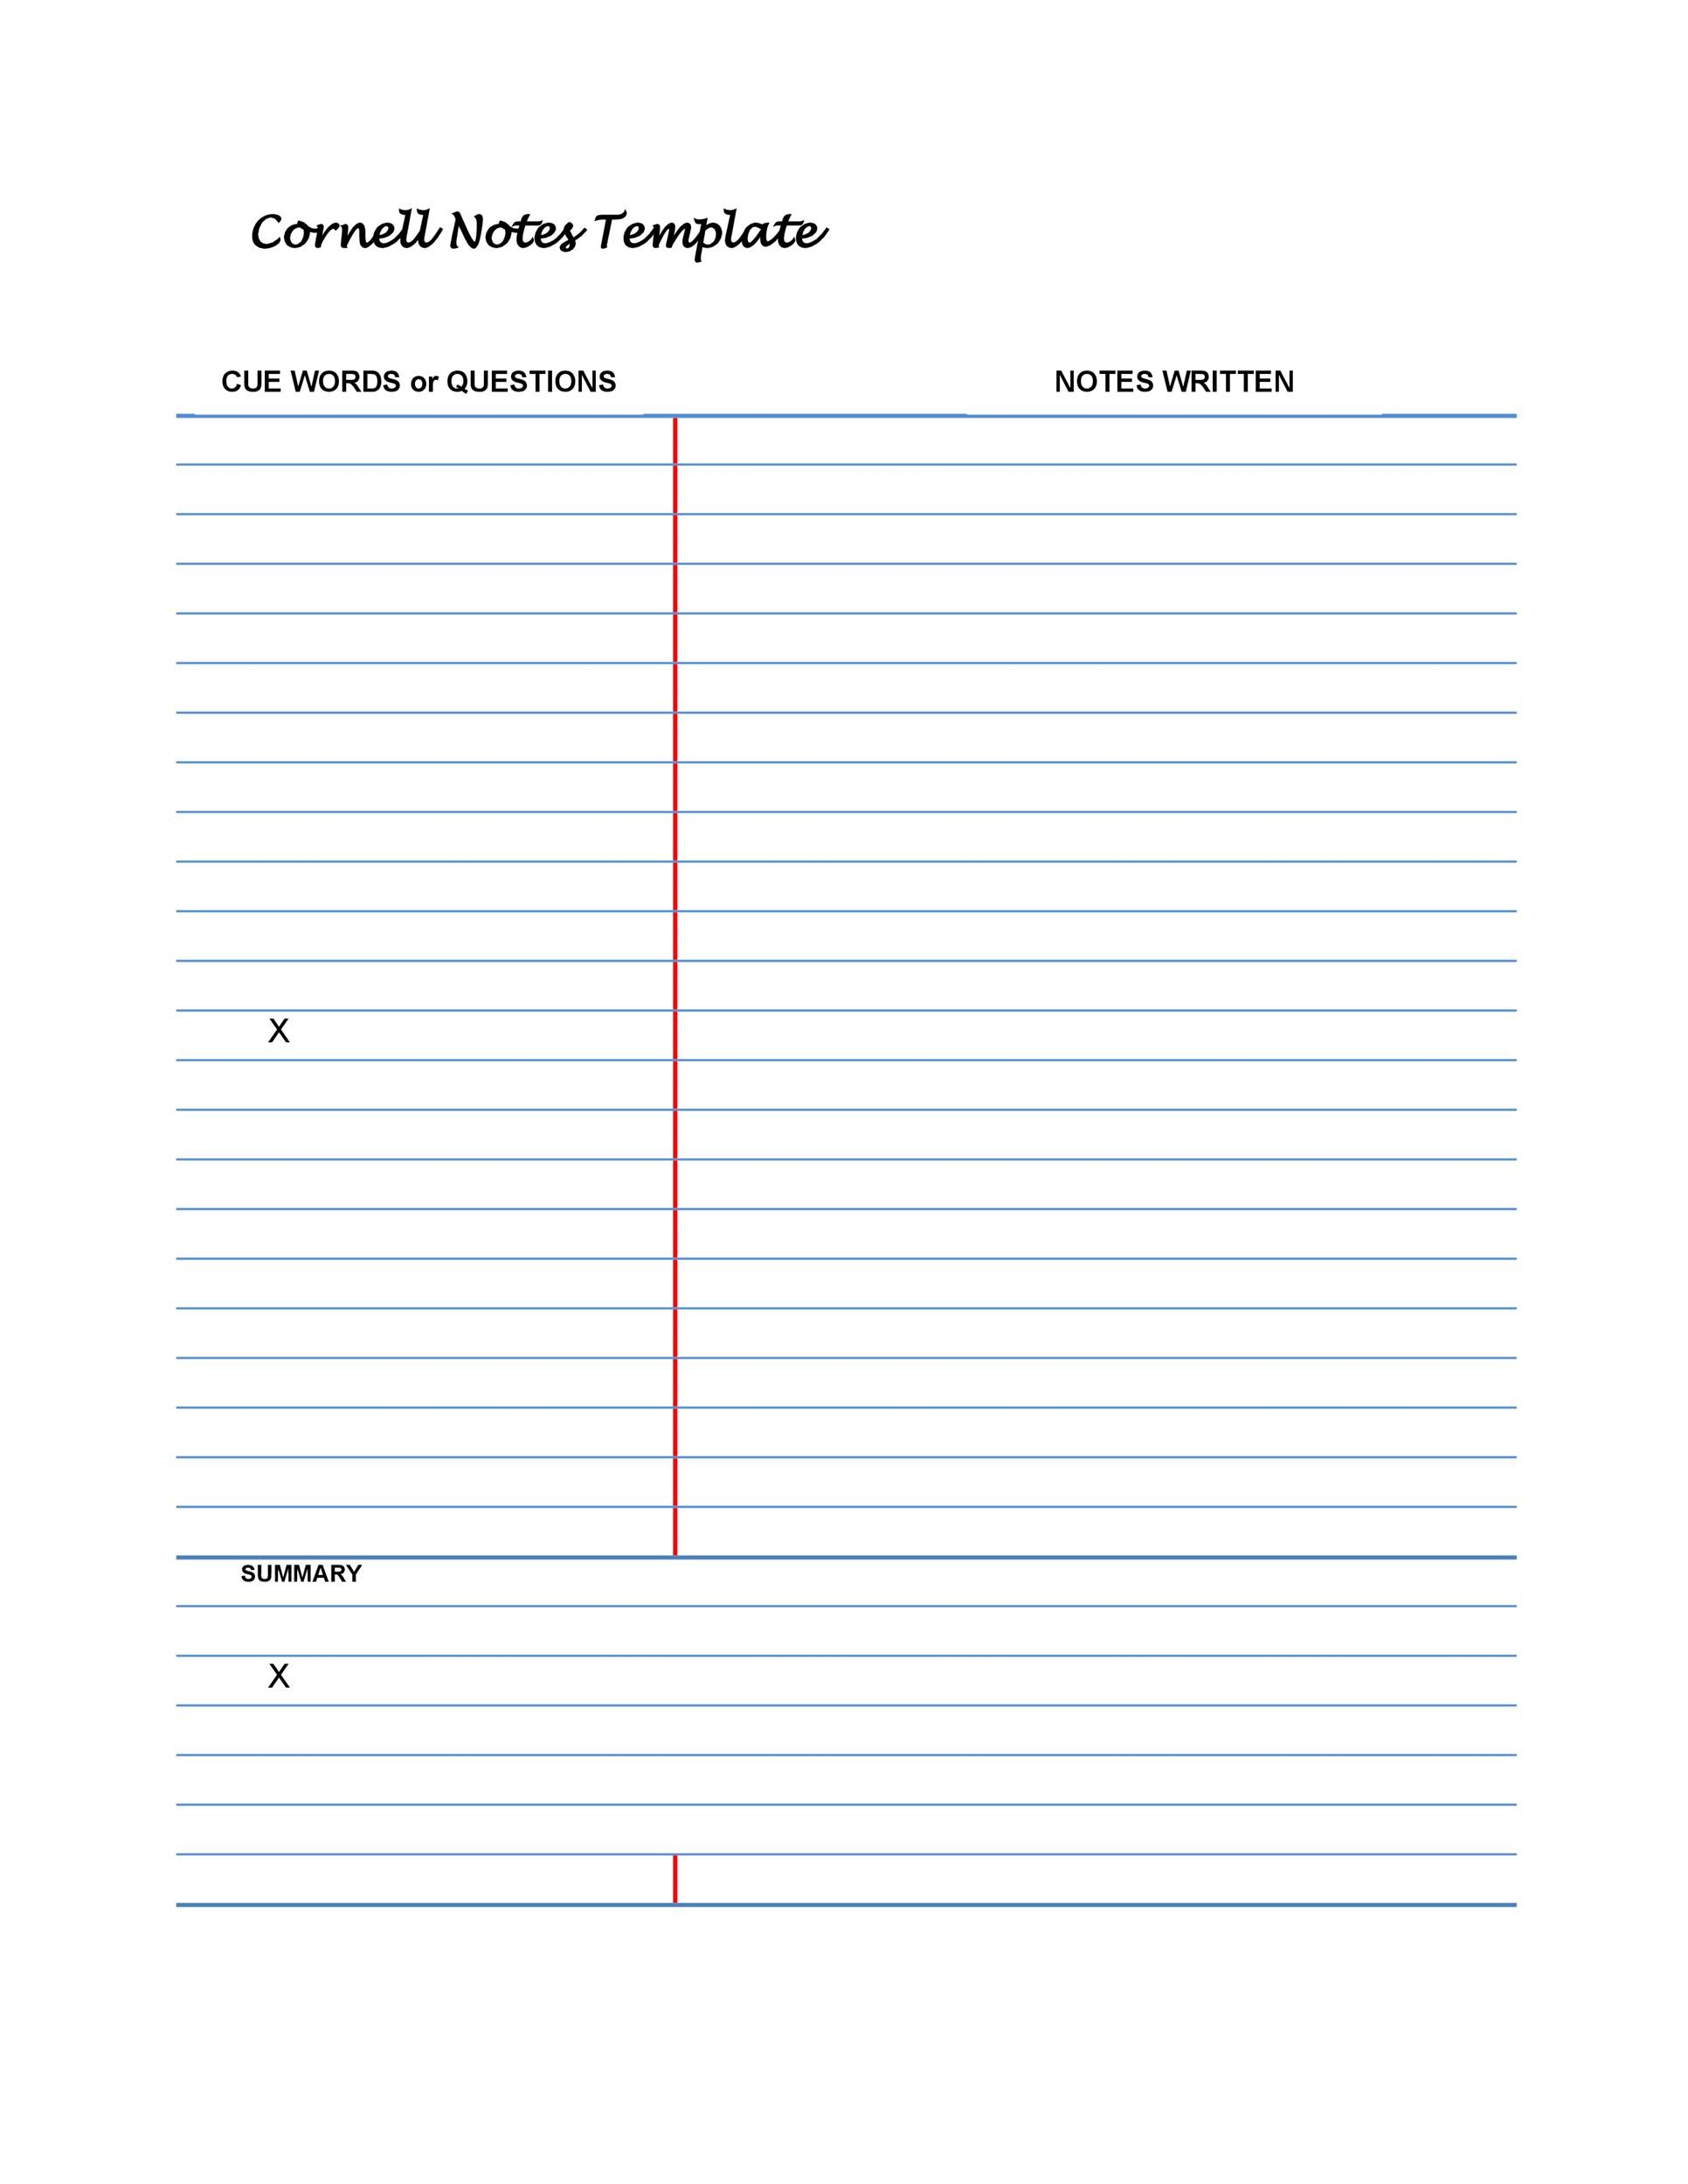 36 cornell notes templates examples word pdf template lab